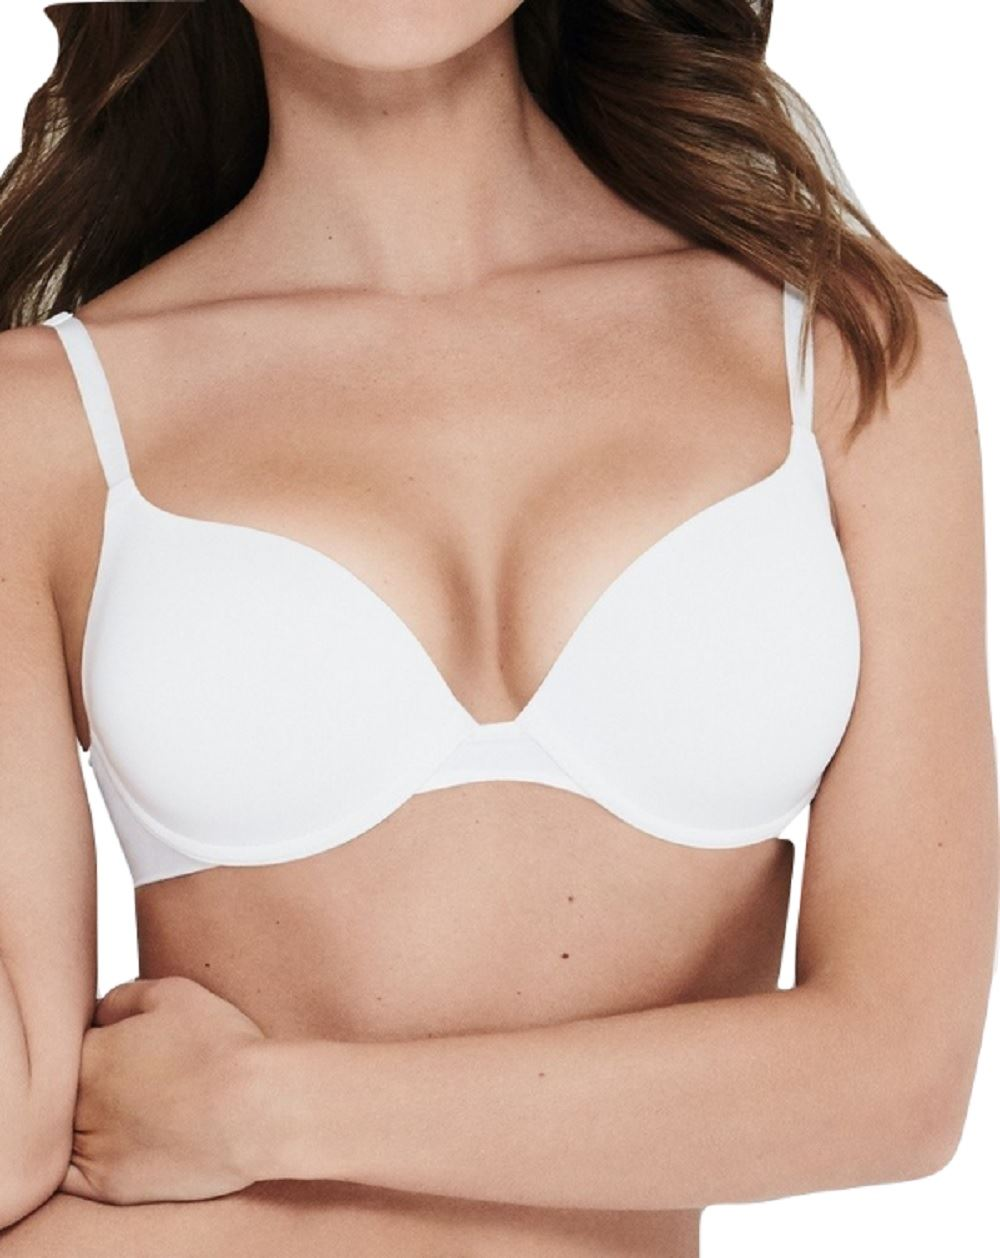 e9046bd7a9 Wonderbra W9443 Underwired Padded MOULDED Push up Multiway T-shirt ...